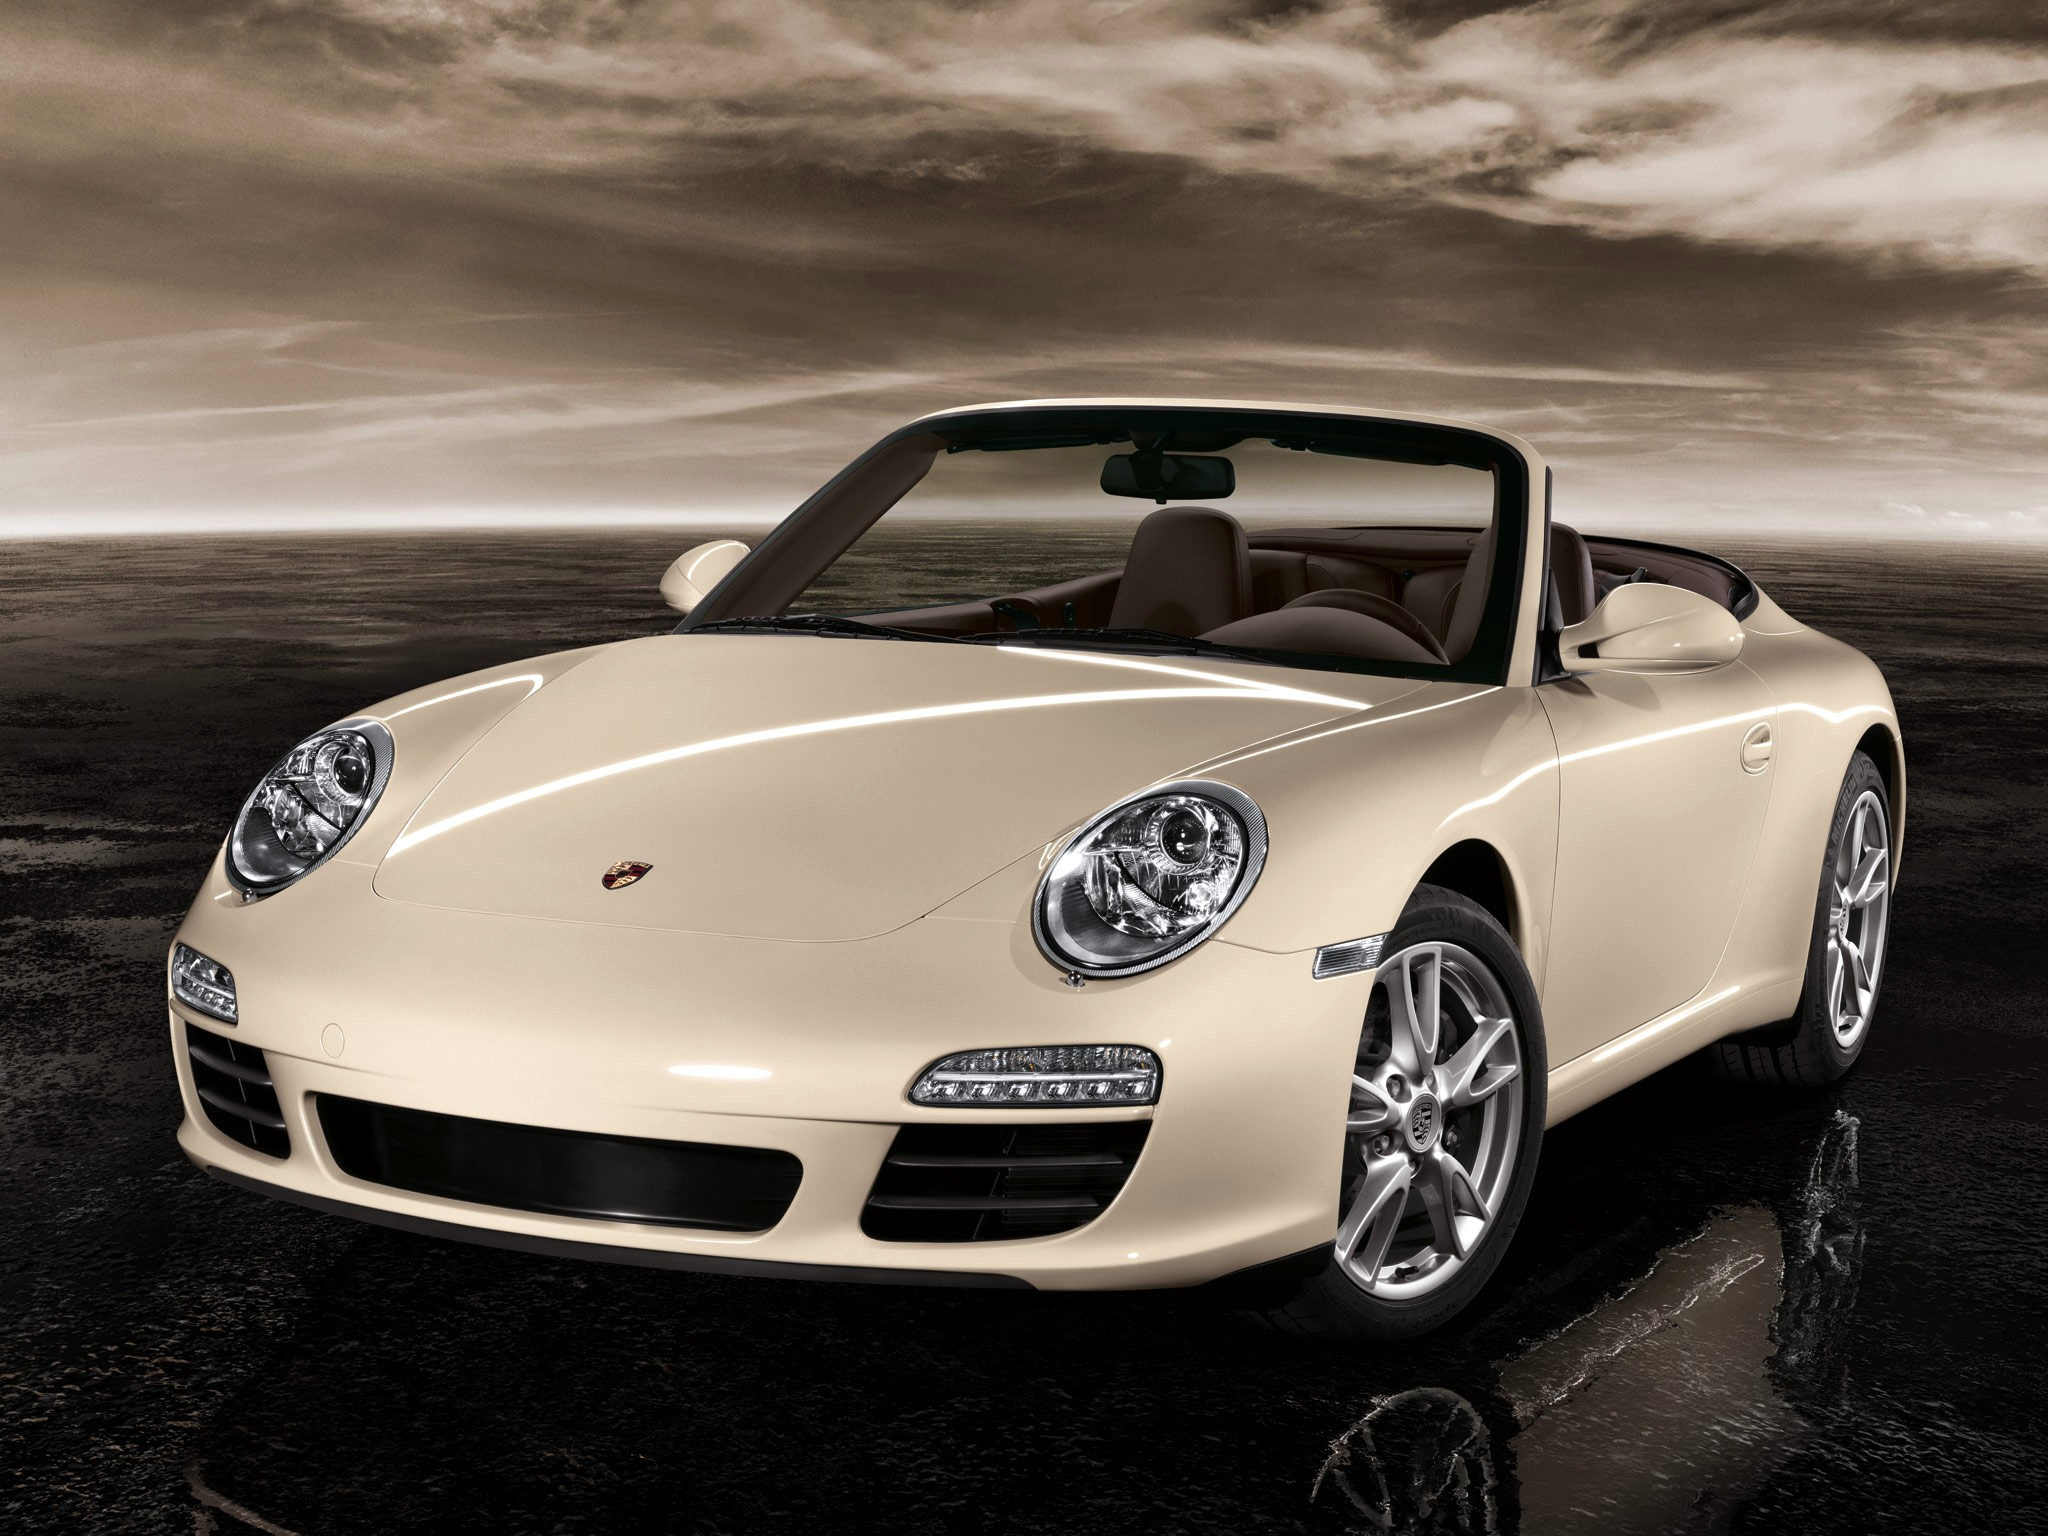 porsche 911 carrera cabriolet 997 specs 2008 2009. Black Bedroom Furniture Sets. Home Design Ideas